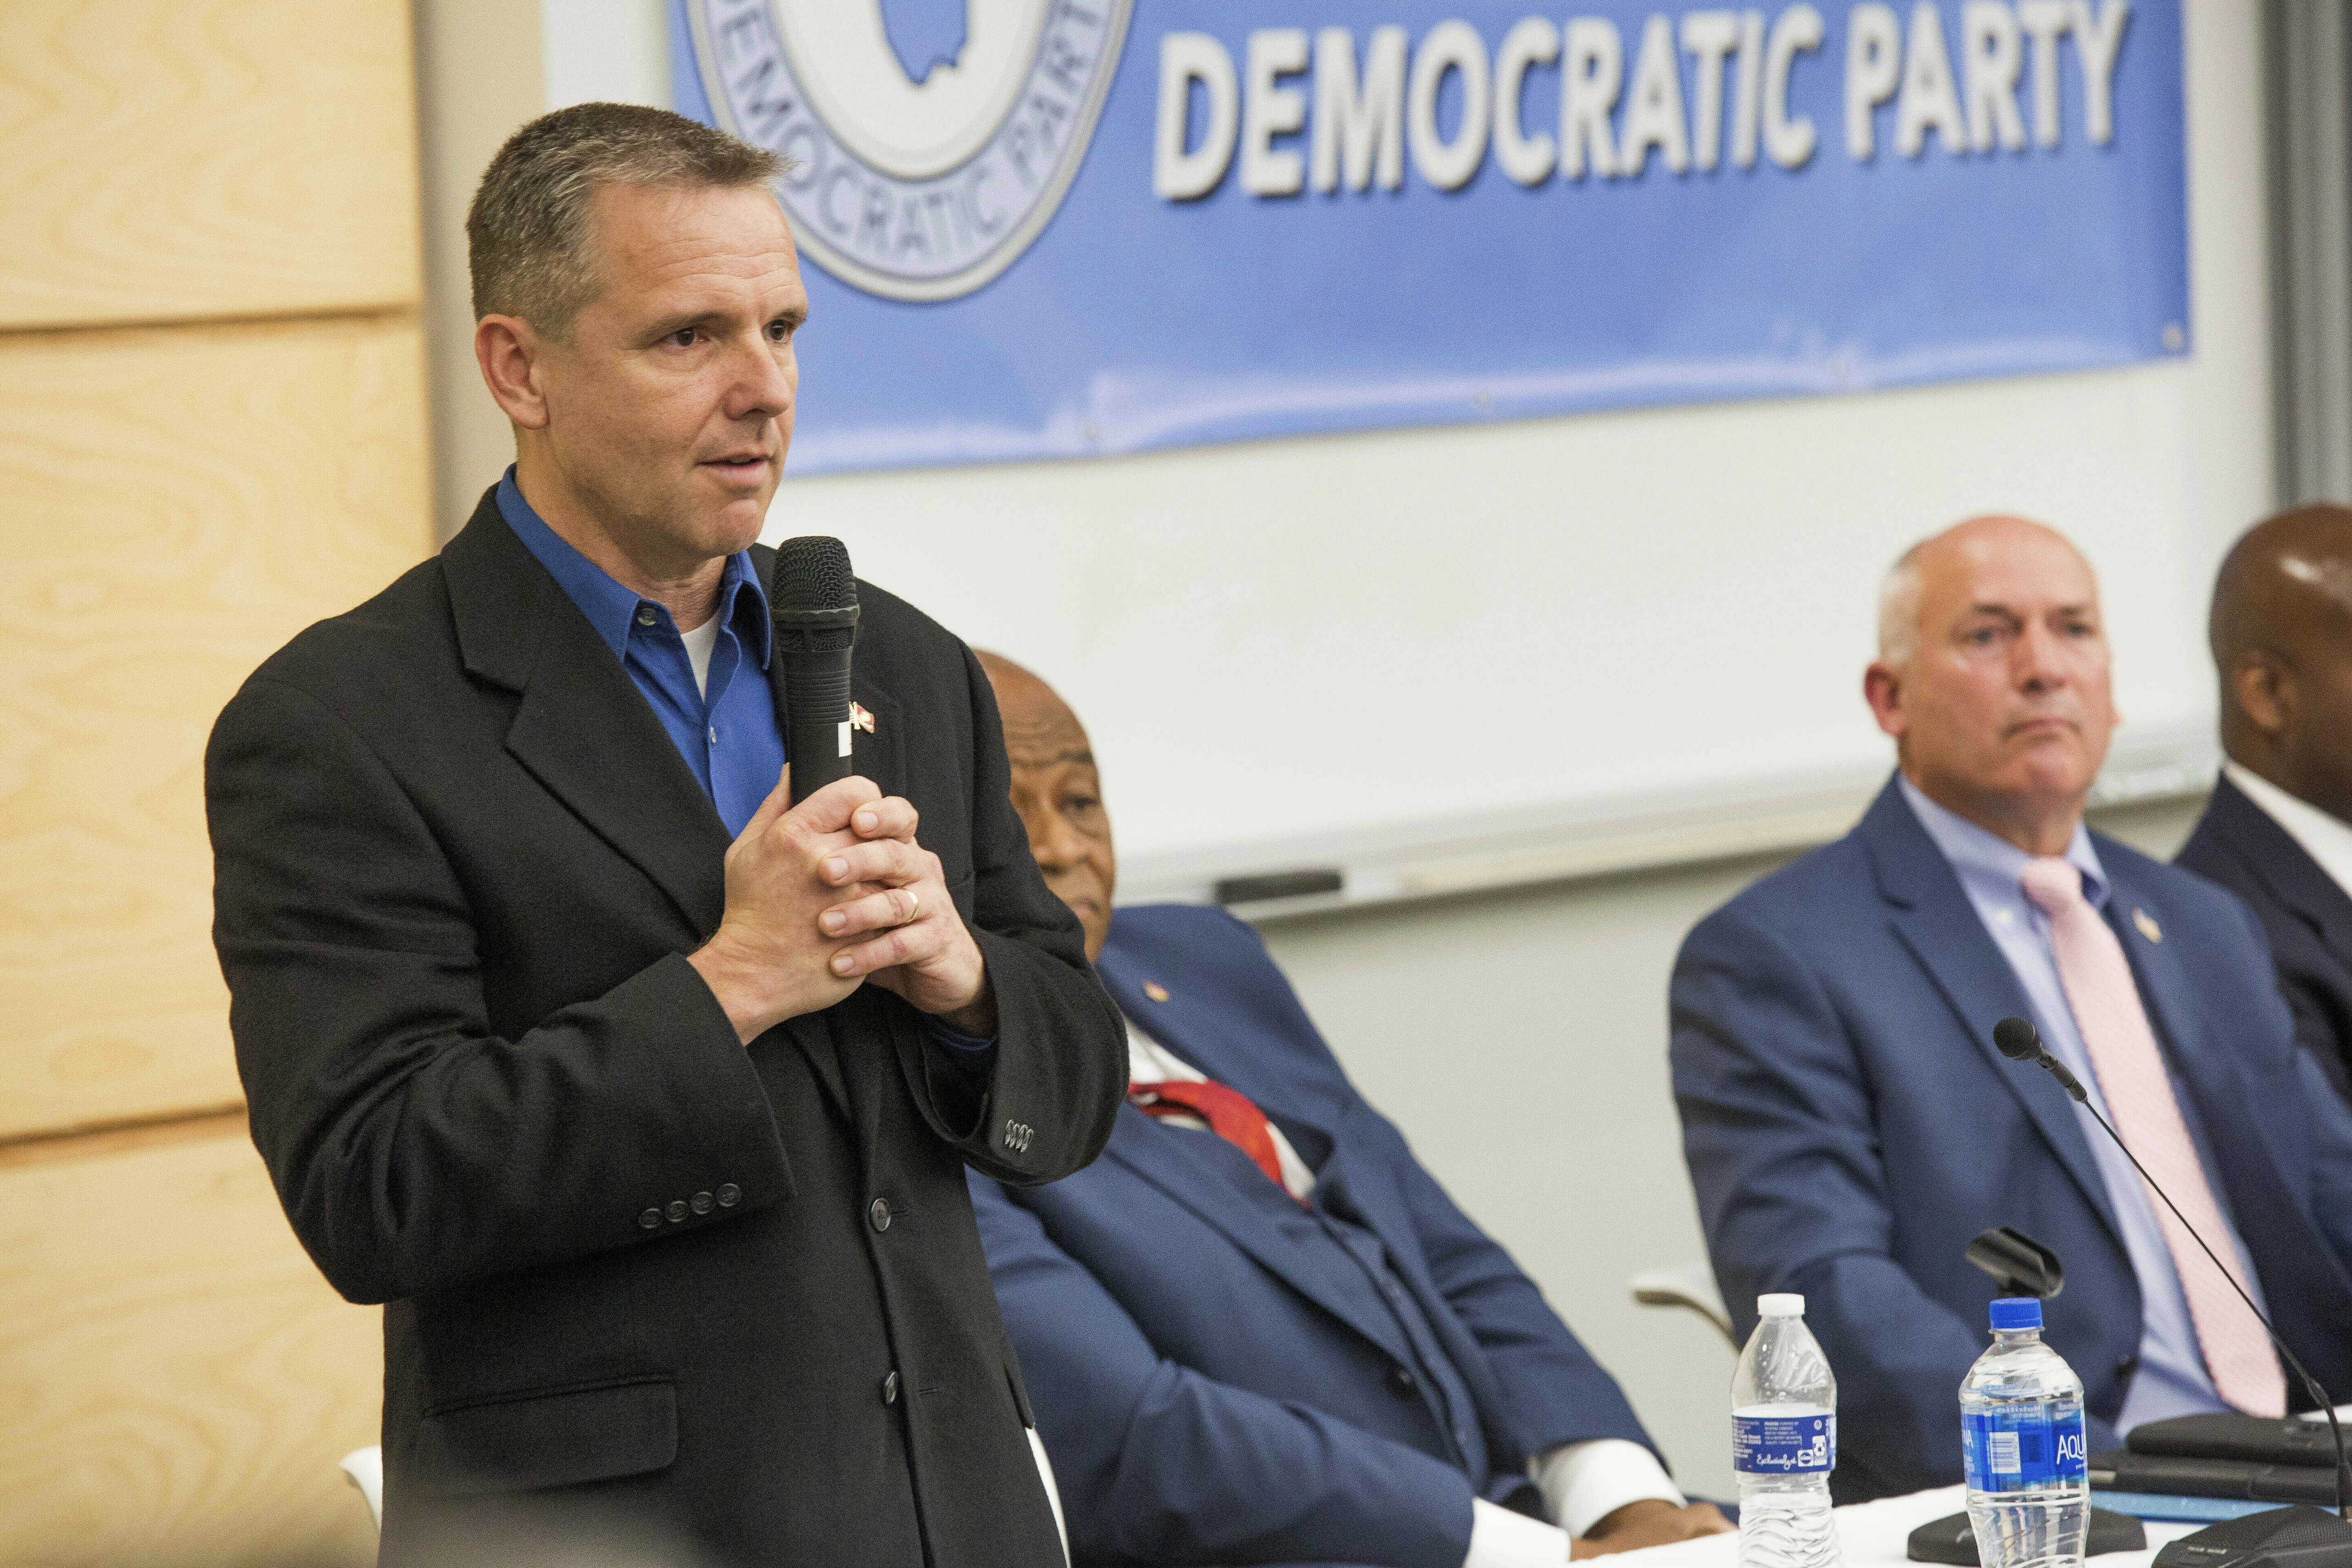 This photo taken April 15, 2019, shows Richard Bew speaking during a forum held by the Pitt County Democratic Party for the Third Congressional District candidates in Winterville, N.C. U.S. Rep. Walter Jones Jr.'s long-held congressional seat in North Carolina was expected to be up for grabs soon, but it happened more quickly than most people anticipated. Months after the Republican announced his 2018 campaign would be his last, Jones' health faded. He died in February at age 76. Jones' death drew people from both sides of the aisle to praise his commitment to his constituents, his faith and his willingness to buck party leadership regardless of political consequences, such as when he opposed the Iraq War. It also drew more than two dozen candidates from four parties into an accelerated, off-year special election to replace him in the GOP-leaning 3rd Congressional District. (Juliette Cooke/The Daily Reflector via AP)